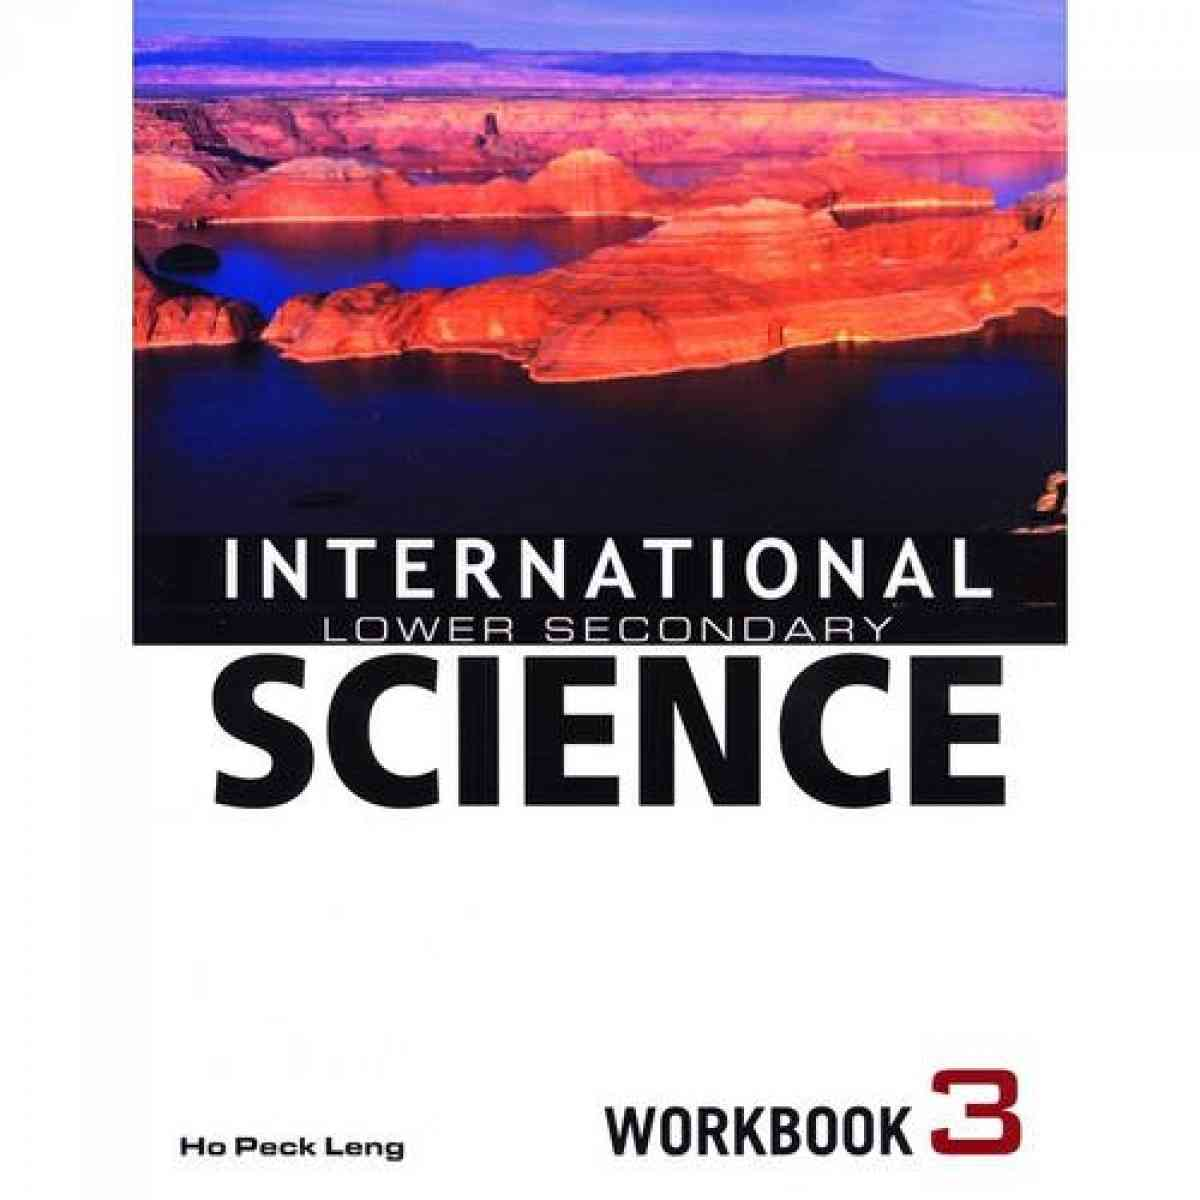 International Lower Secondary Science Workbook 3 For Class 7